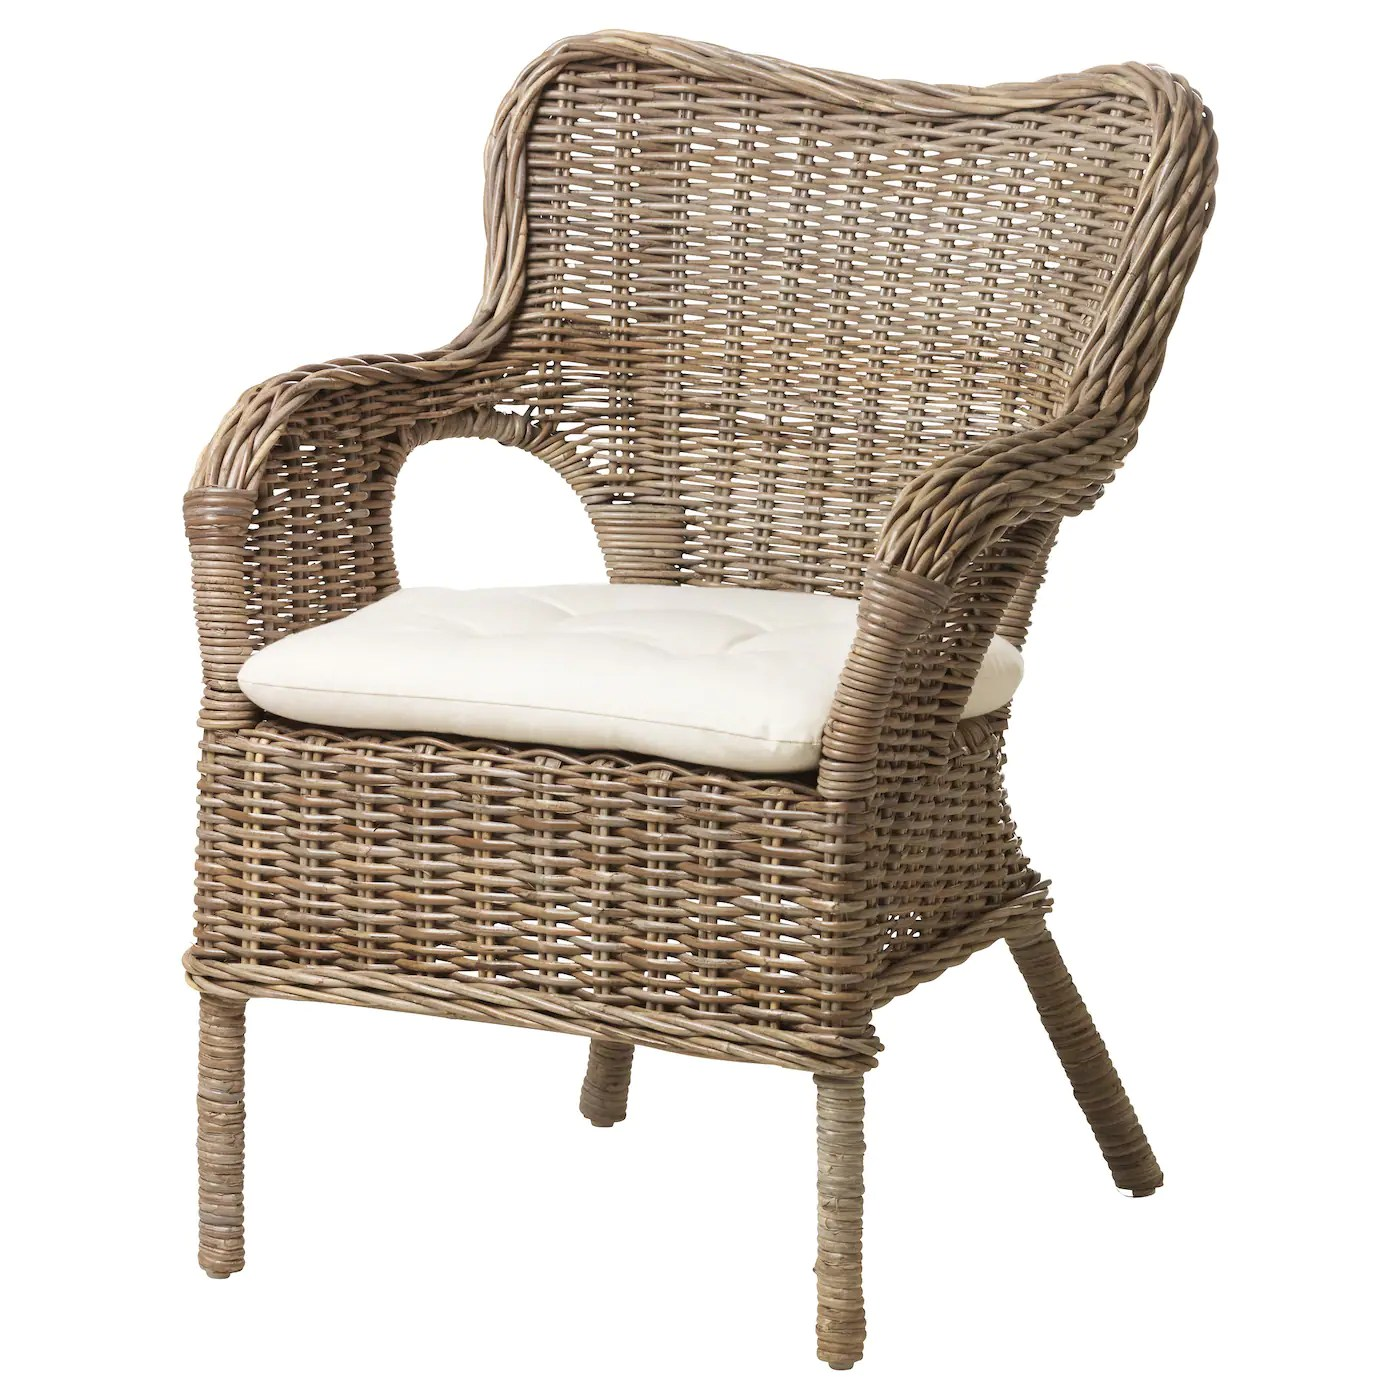 Cane Furniture Perth Rattan Chairs Ikea